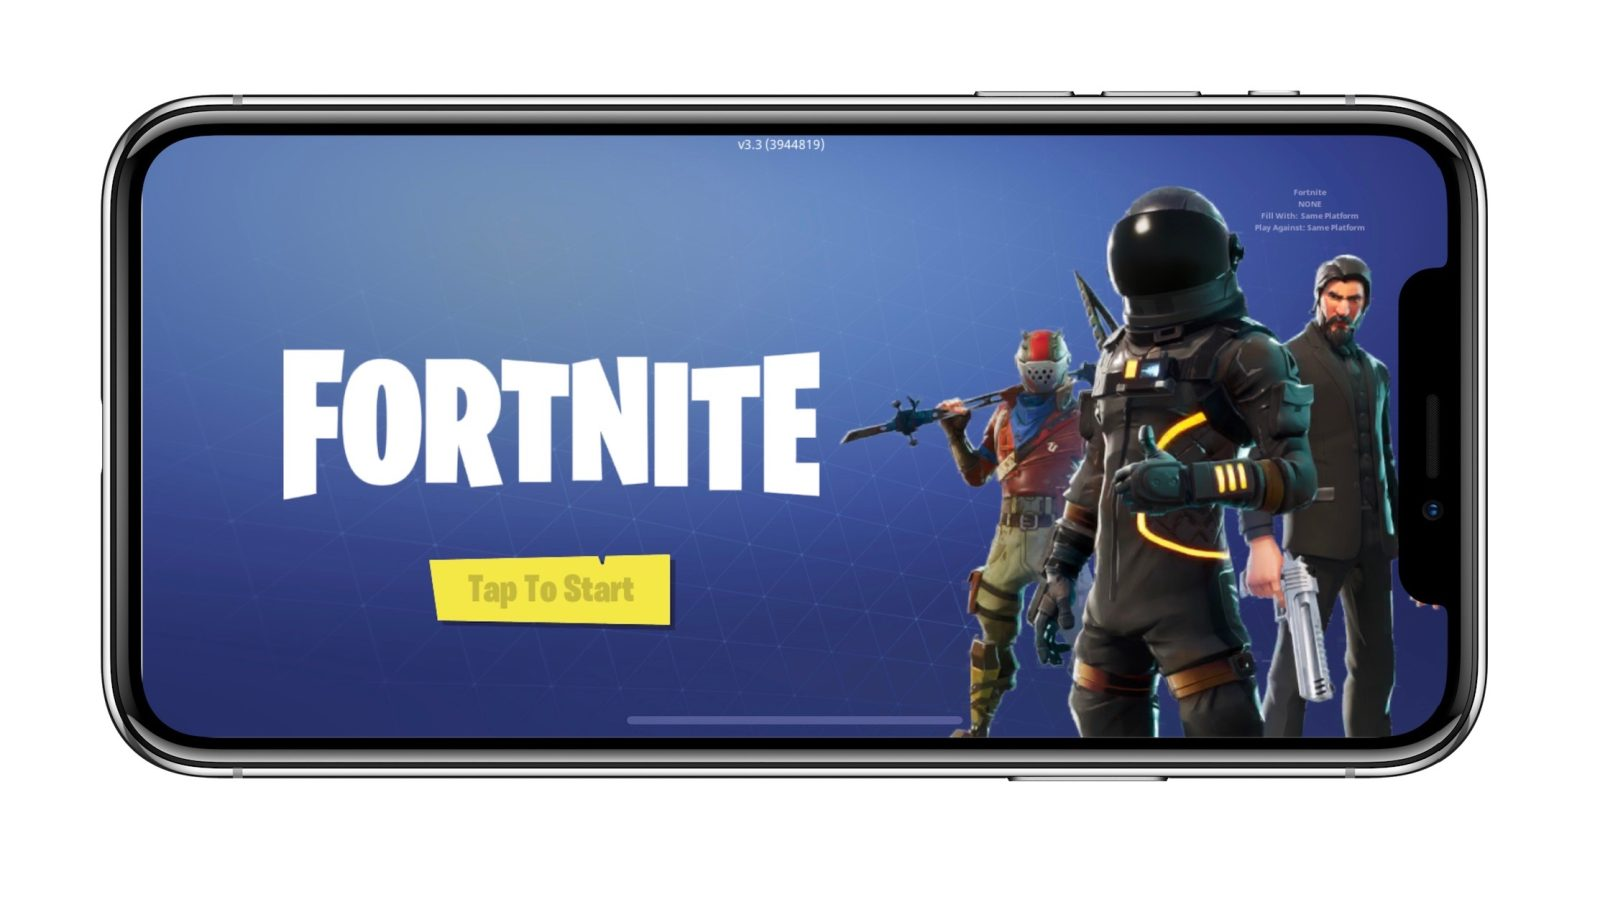 fortnite for ios is now live in the app store here s how to get an invite - how many players in fortnite right now